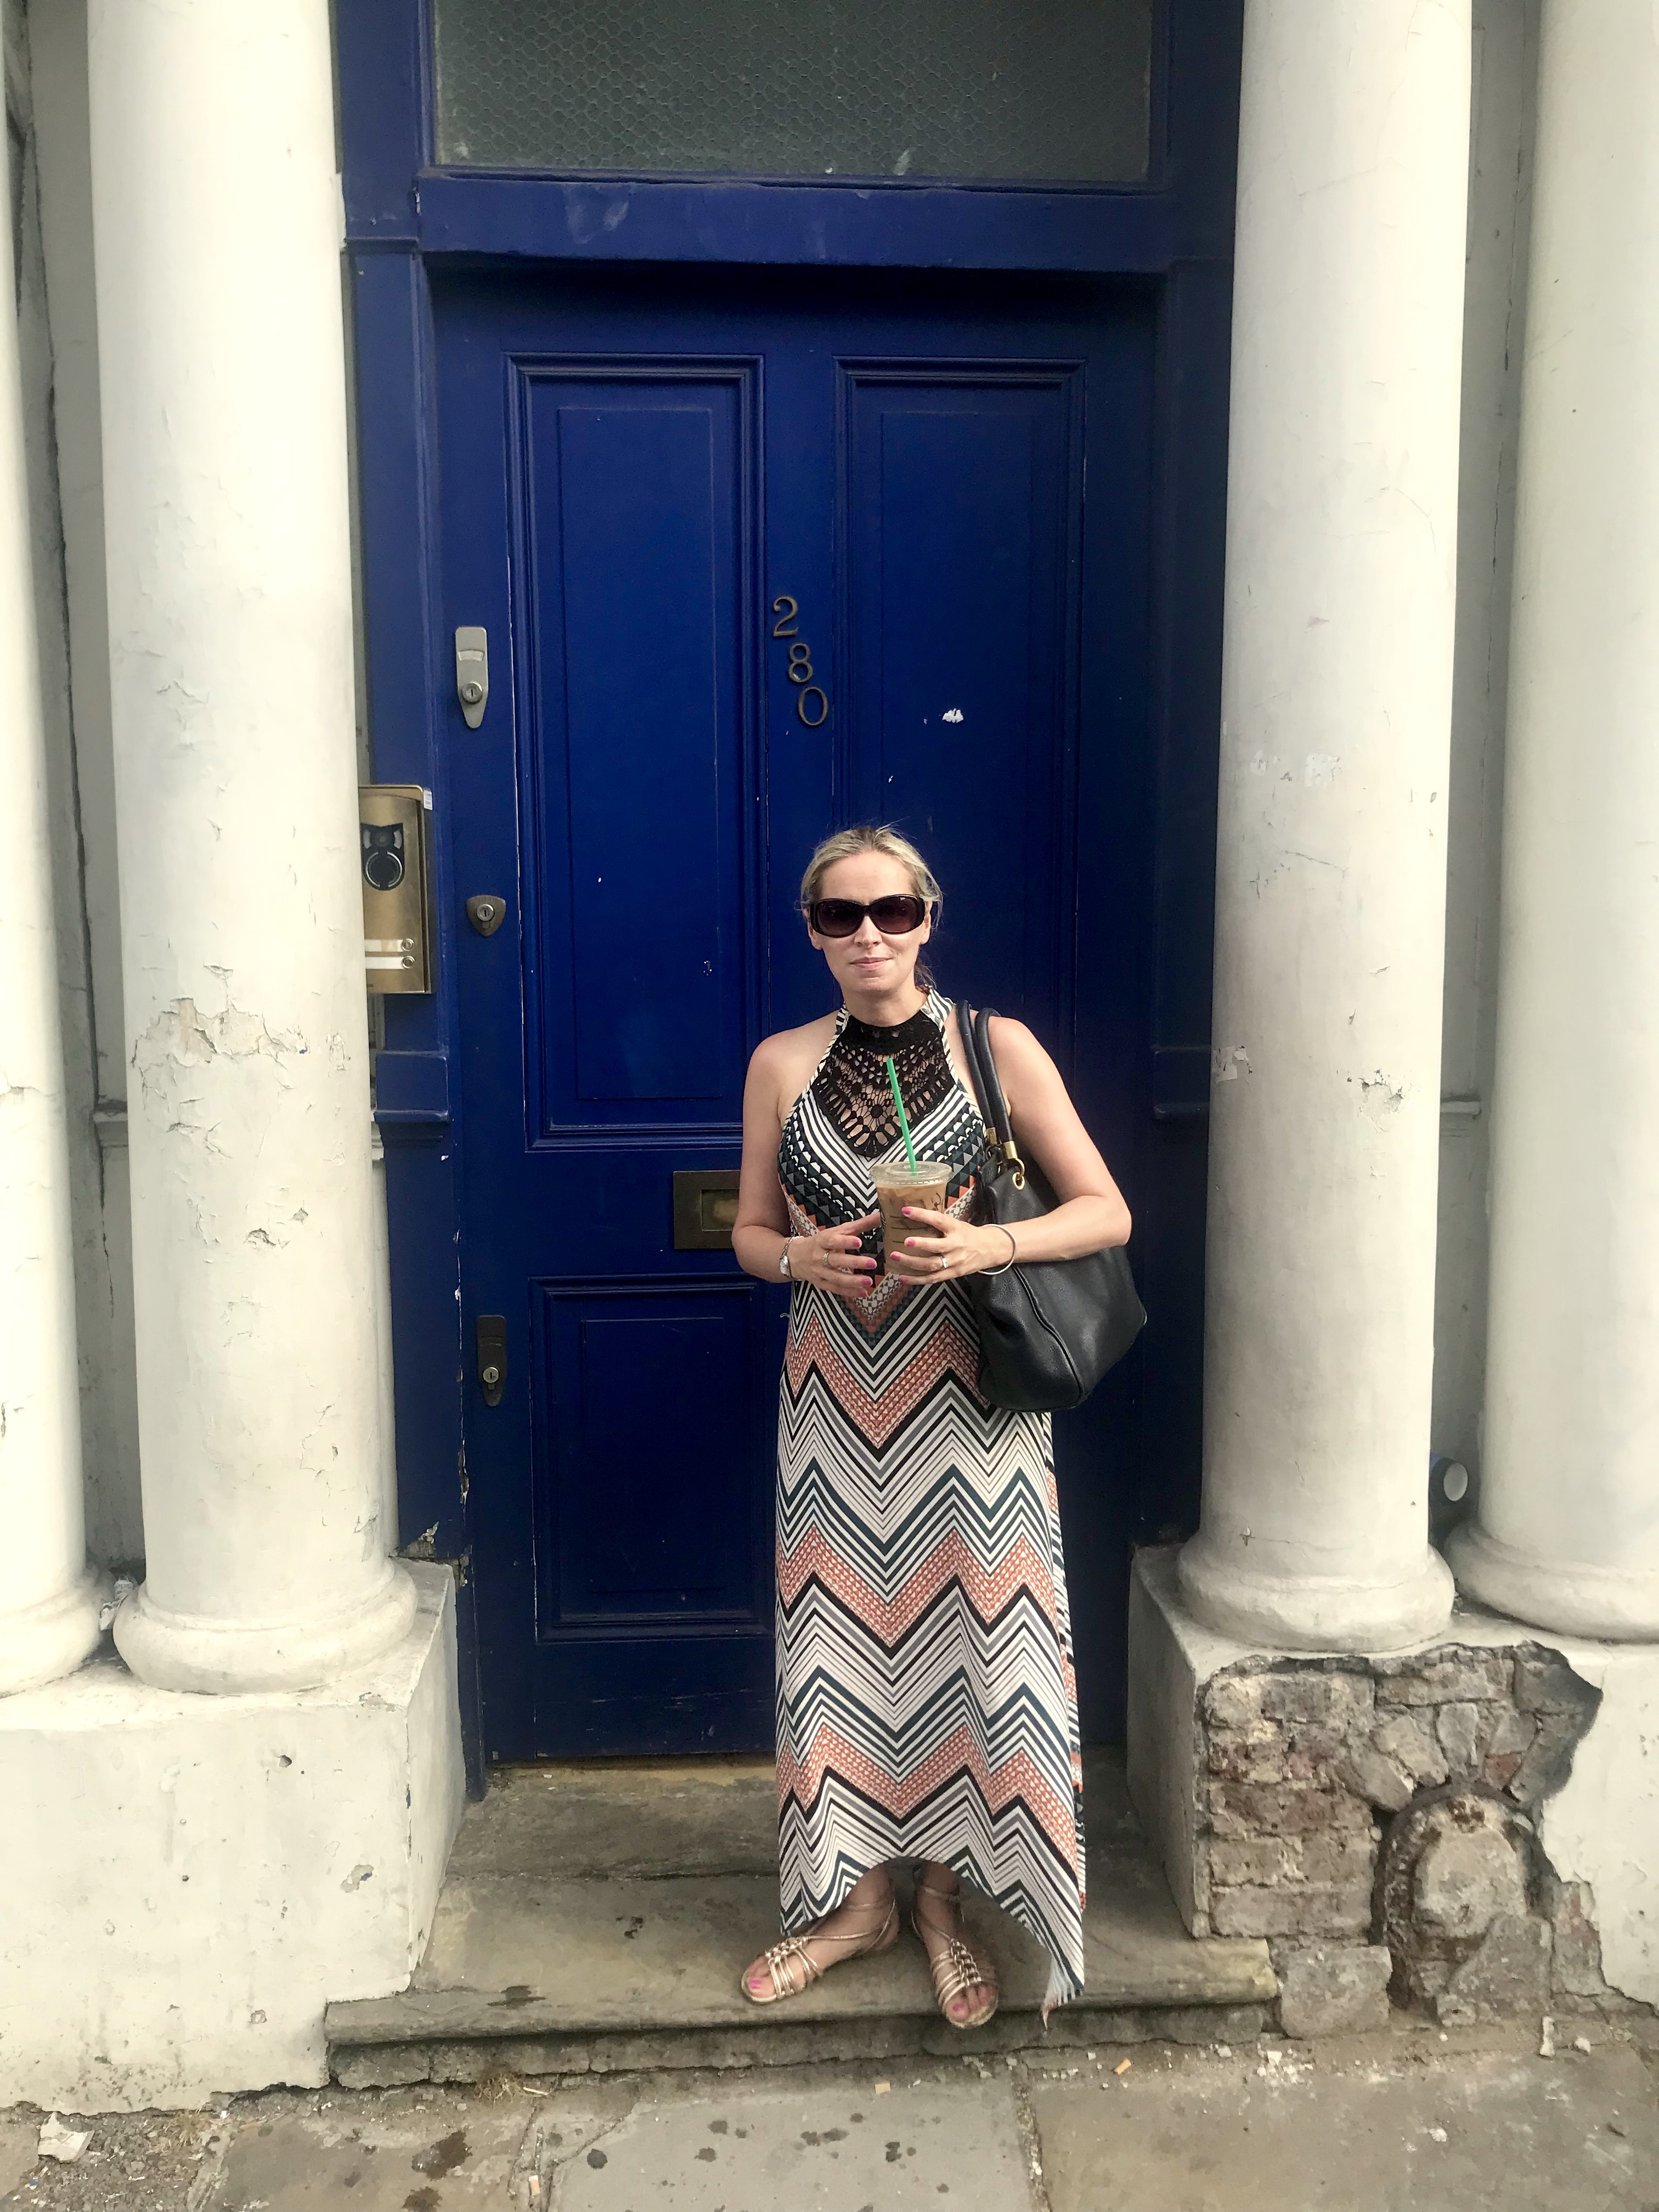 Notting Hill blue door